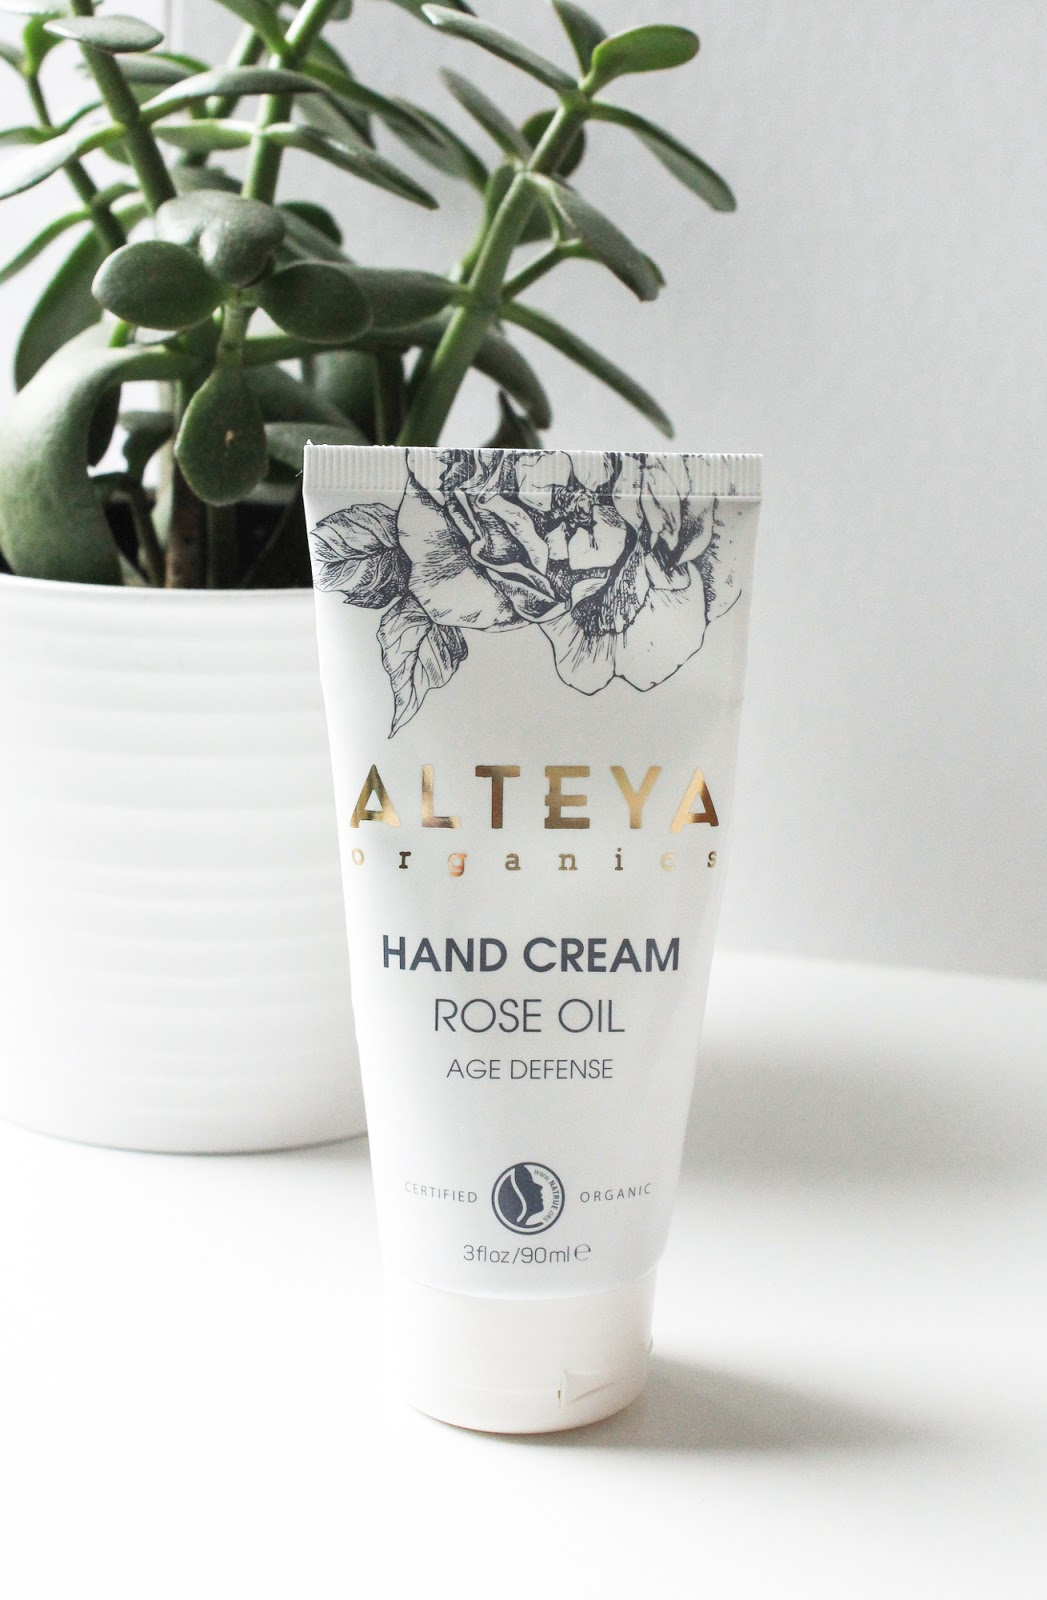 Alteya Organics Hand Cream Rose Oil Age Defense. LoveLula